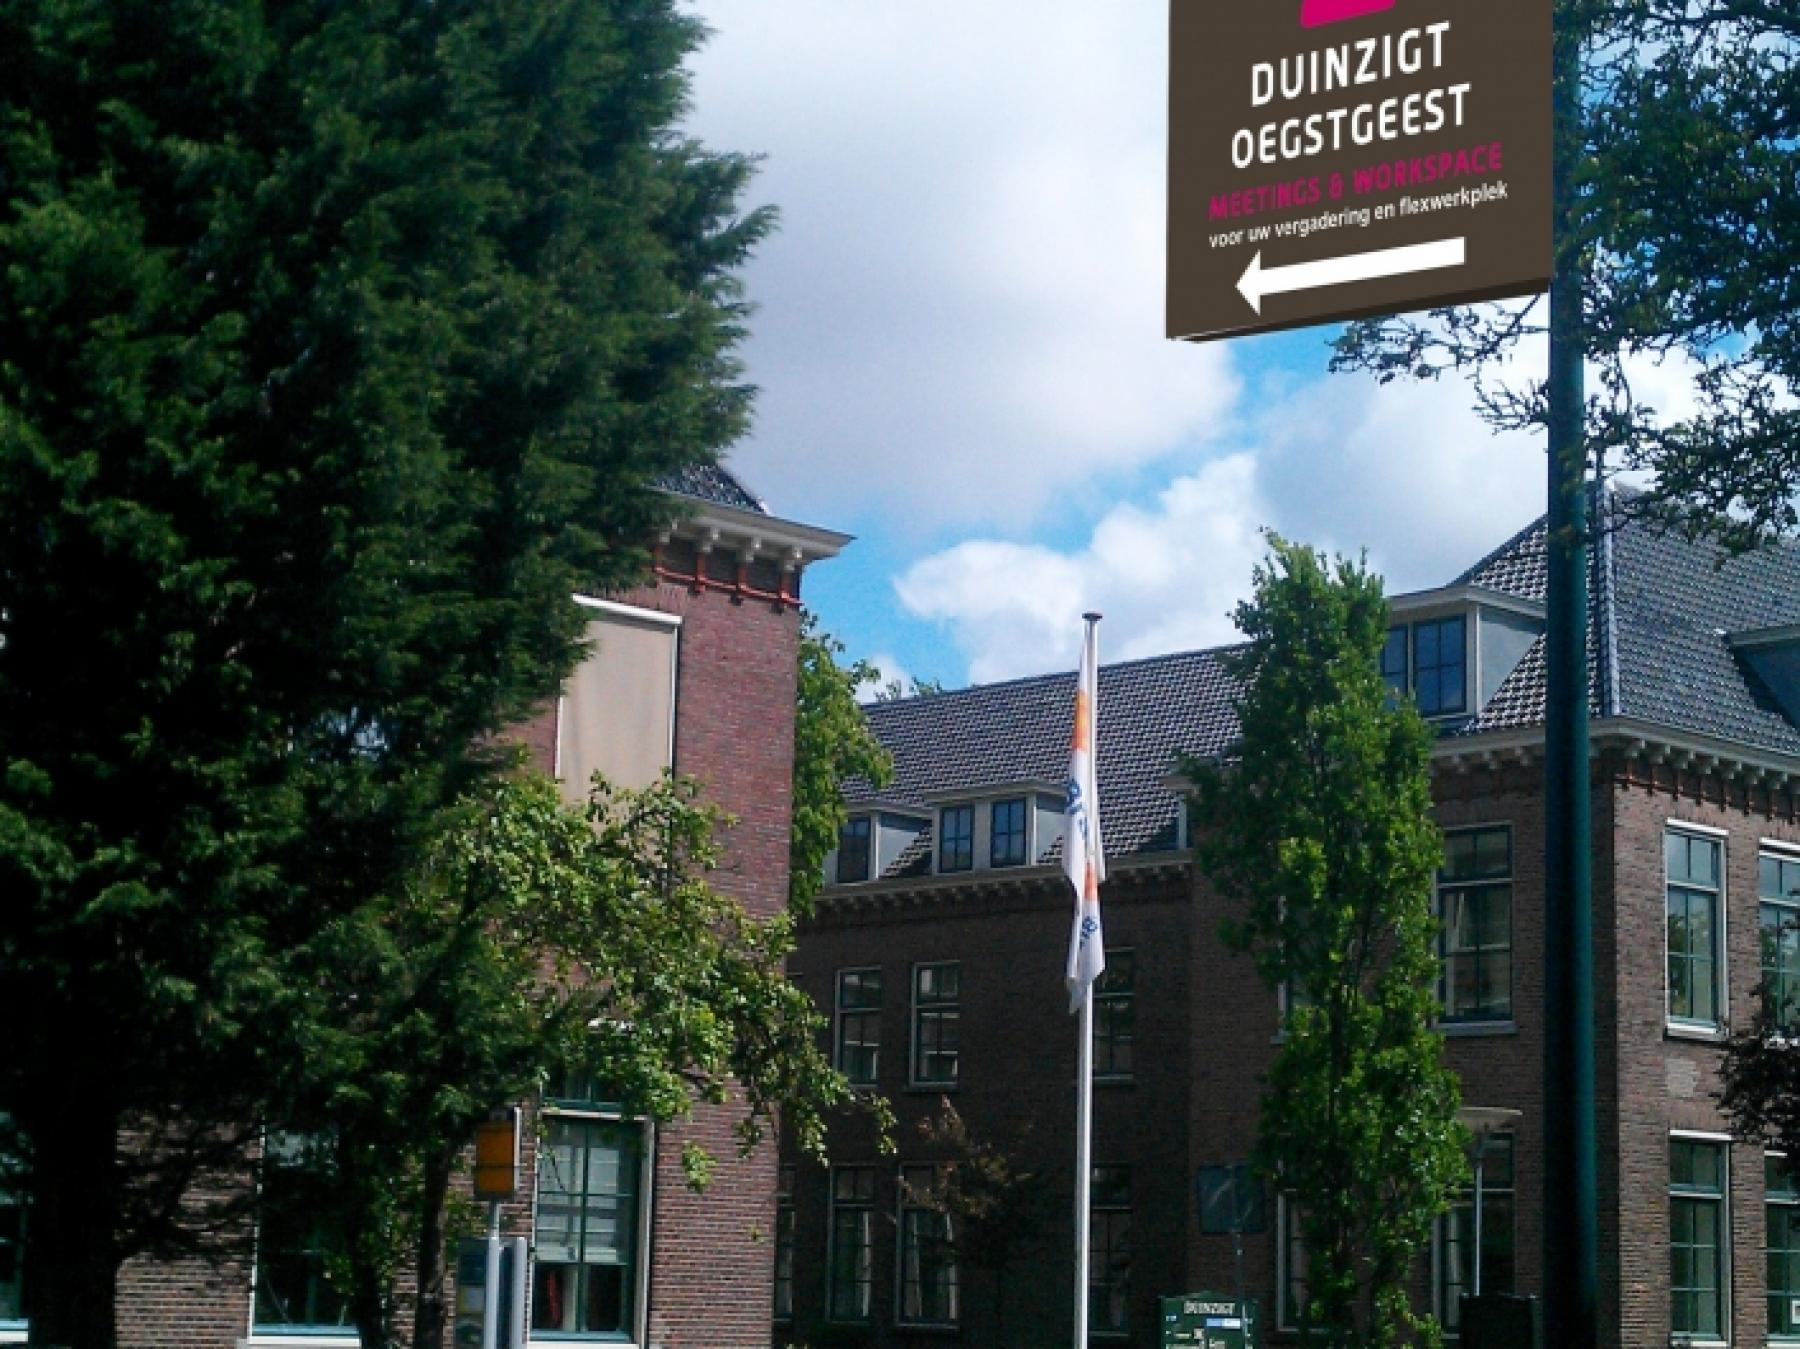 duinzigt oegstgeest